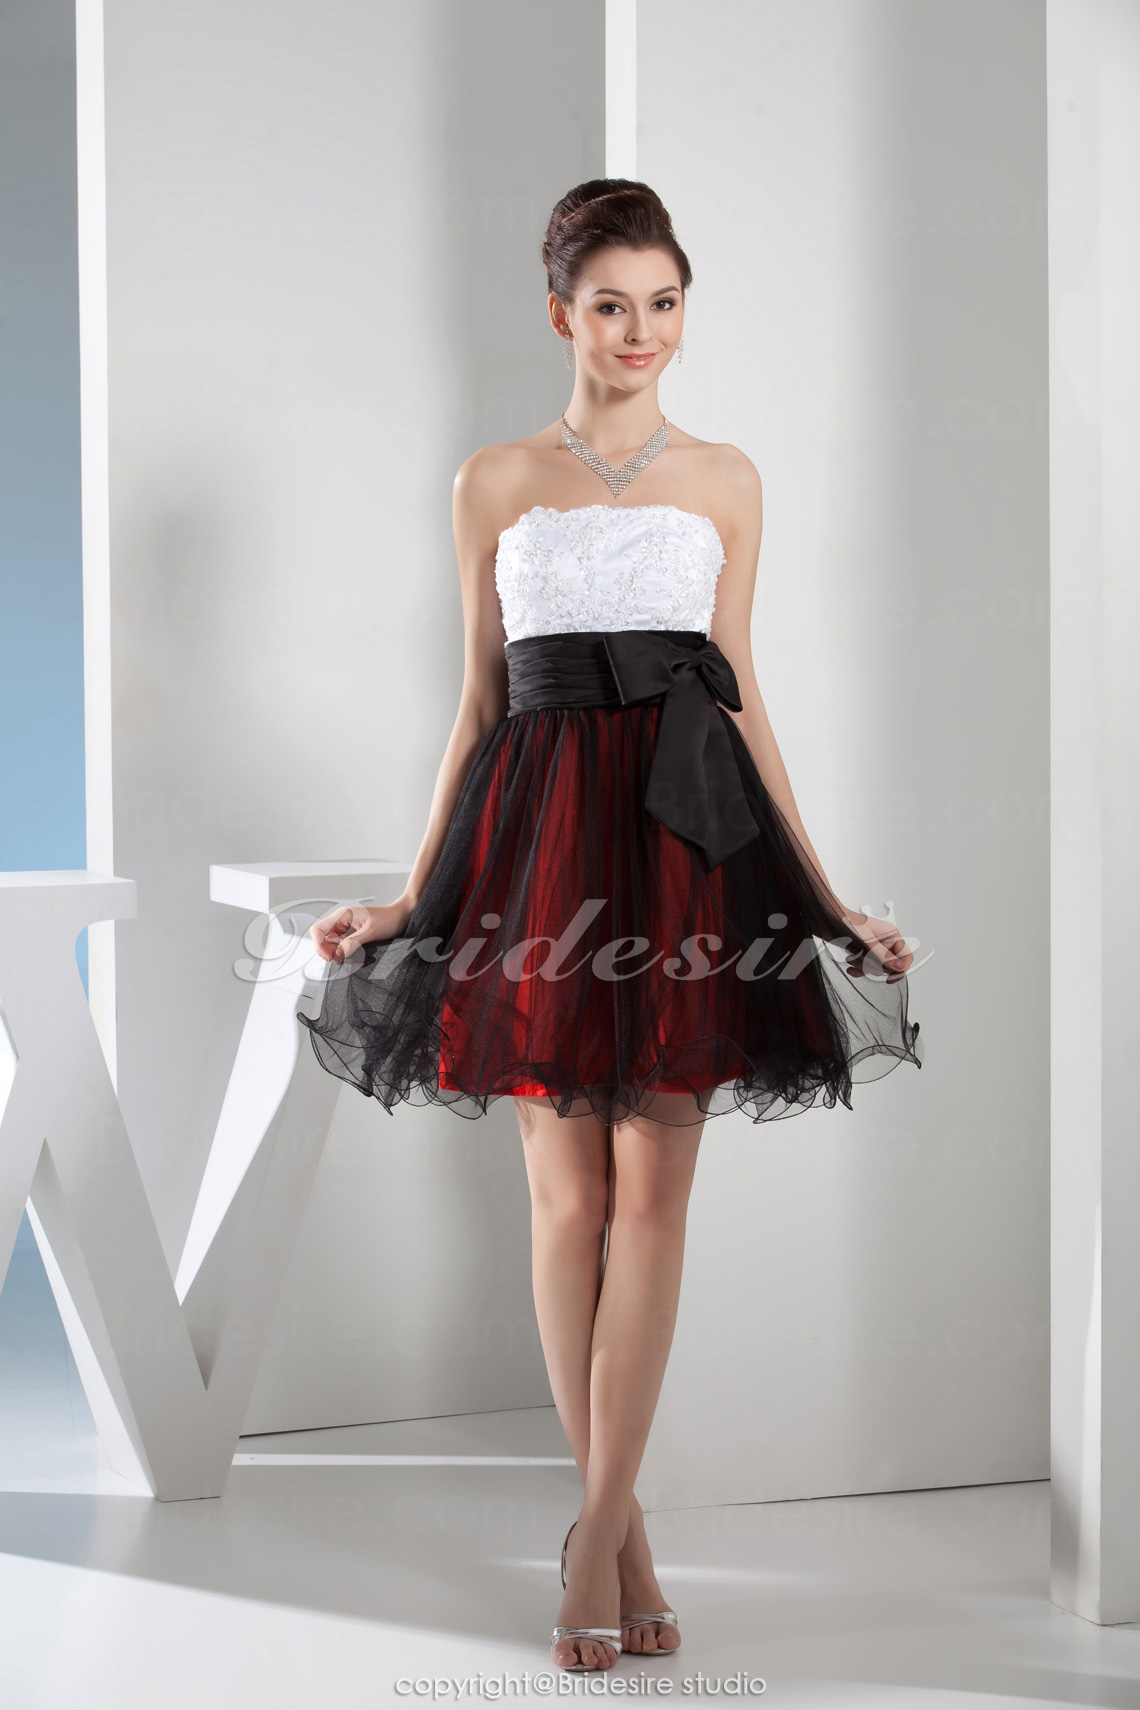 A-line Strapless Knee-length Sleeveless Satin Lace Dress